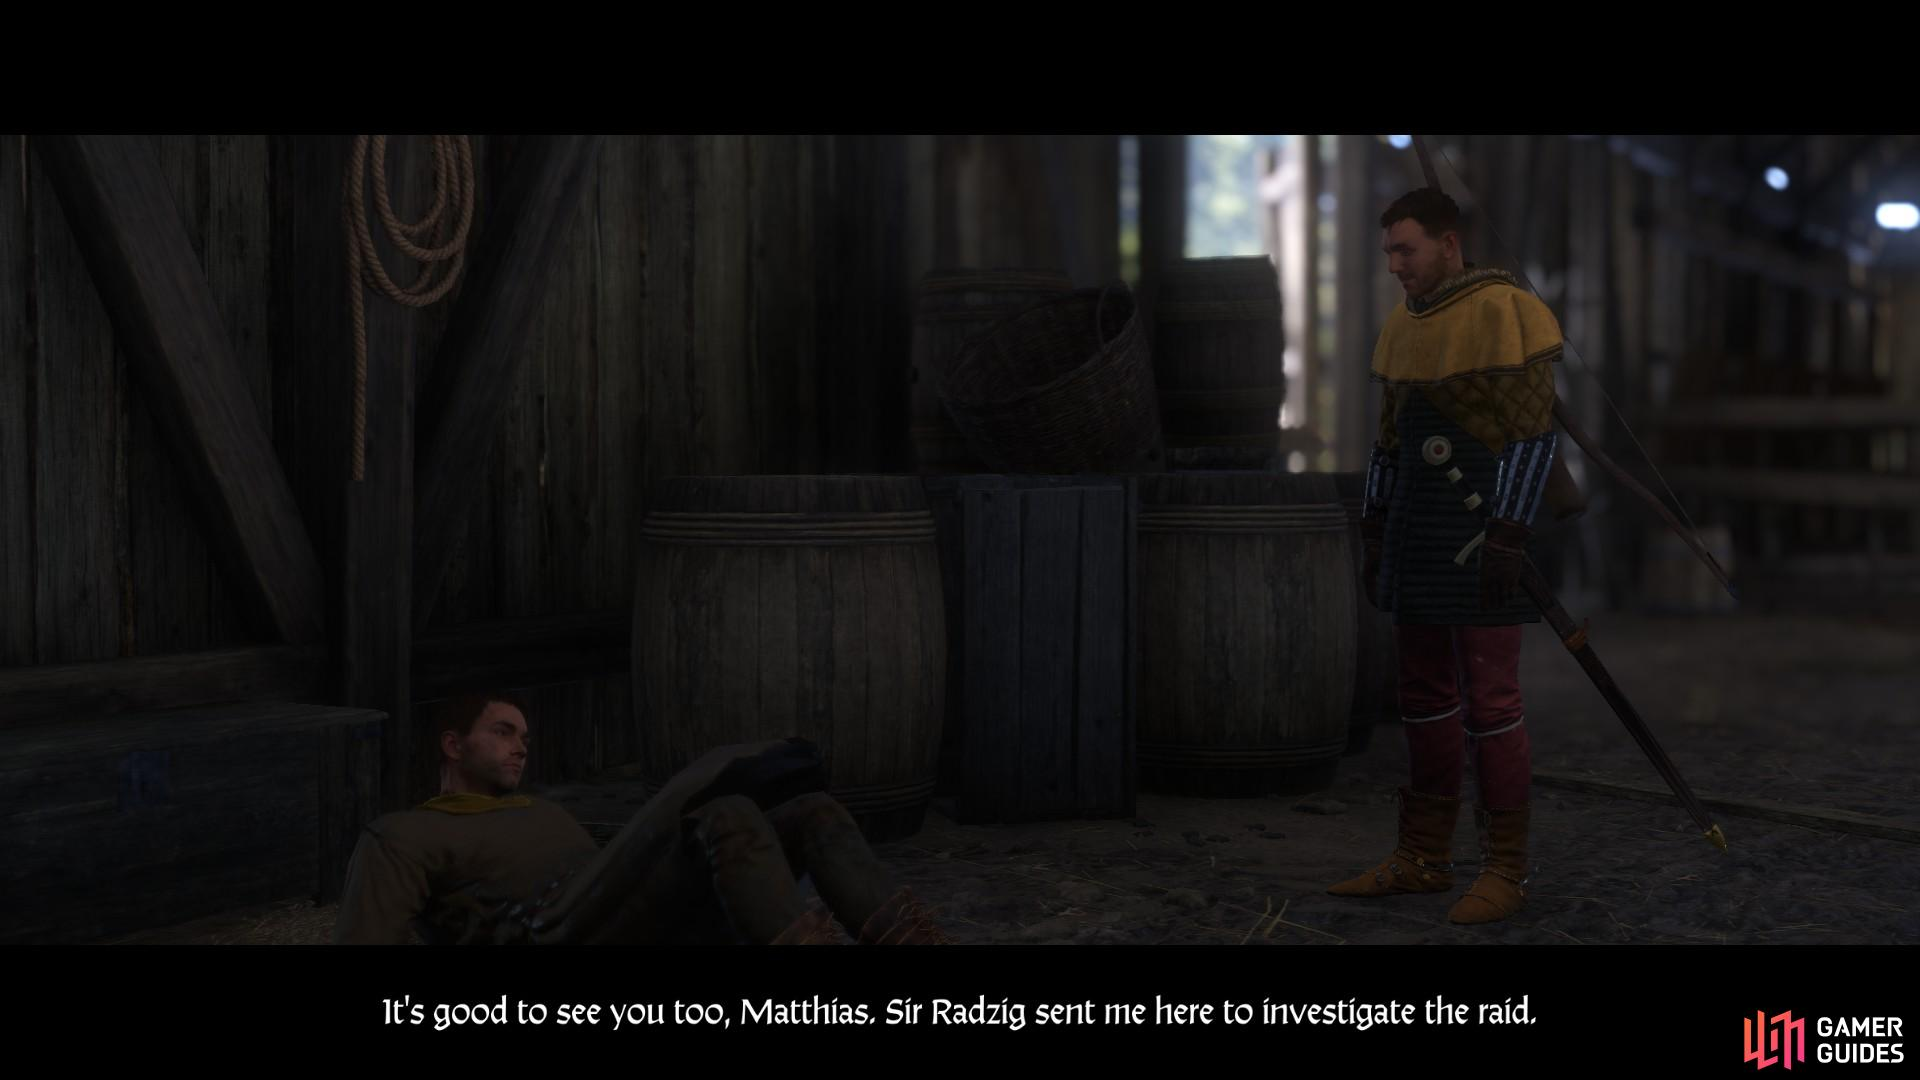 When you arrive in Merhojed go to the stables. You will find Matthias lying wounded on the floor.